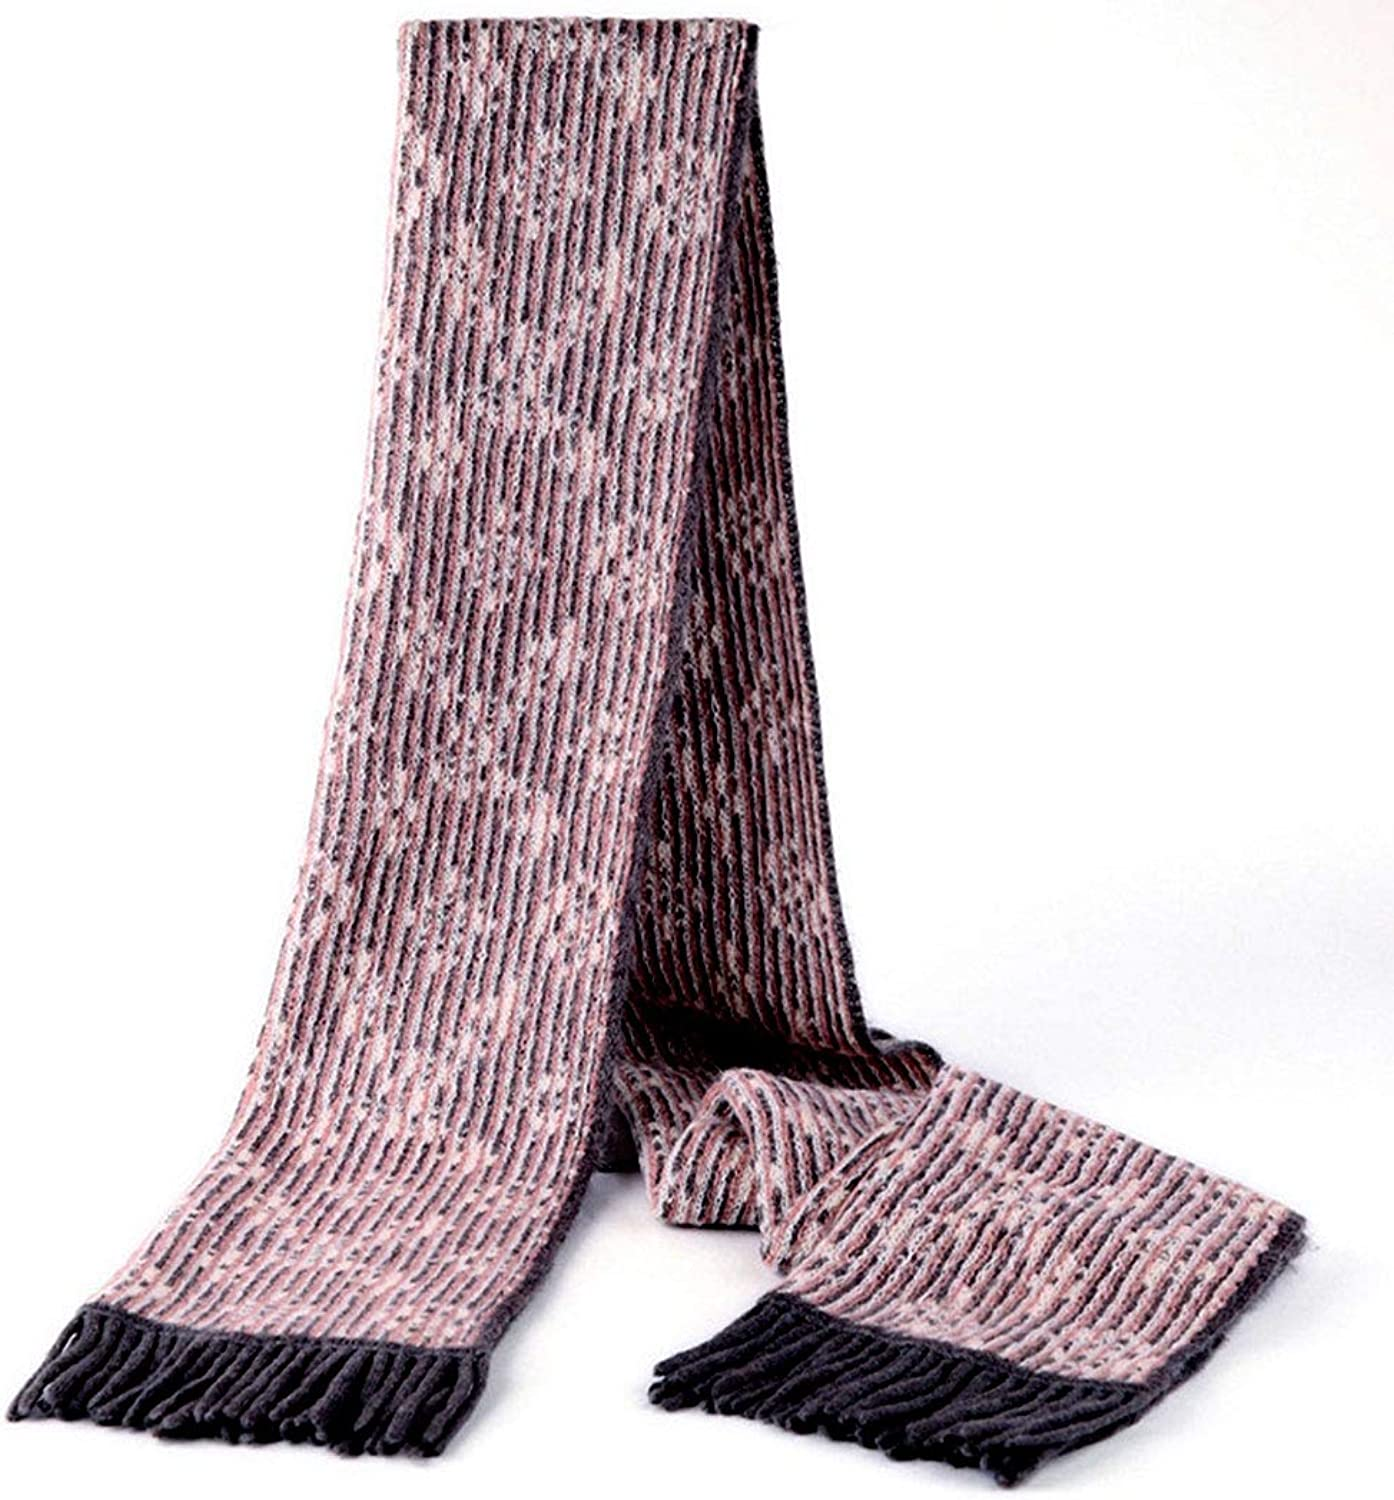 HUIFANG Spring and Autumn and Winter New Ladies Scarf Wool Scarf Long Section Korean Version of The Wild Thick Warm Tassels Shoulder Collar 30  180cm A (color   Pink, Size   30  180cm)